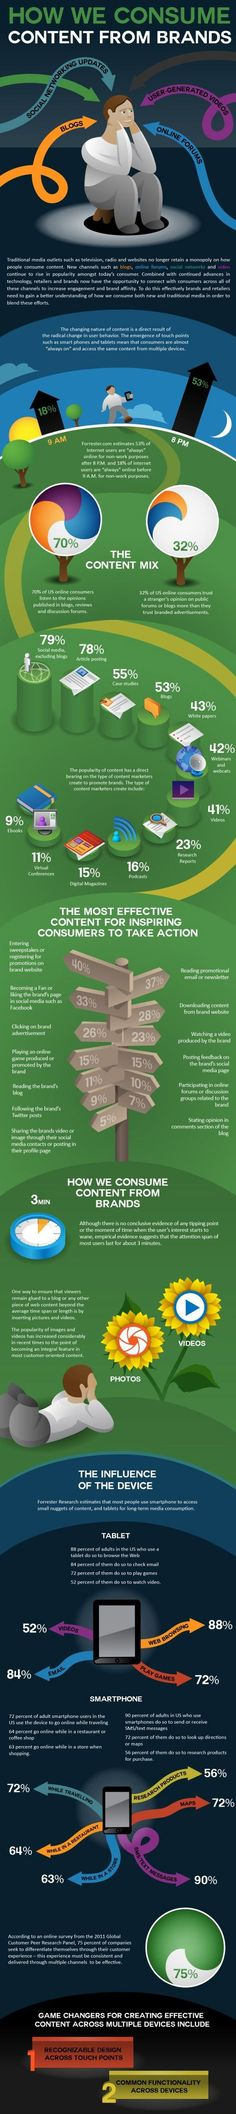 How We Consume Content From Brands [Infographic] | By: ContentPlus, via Jeff Bullas (#contentmarketing #infographic)